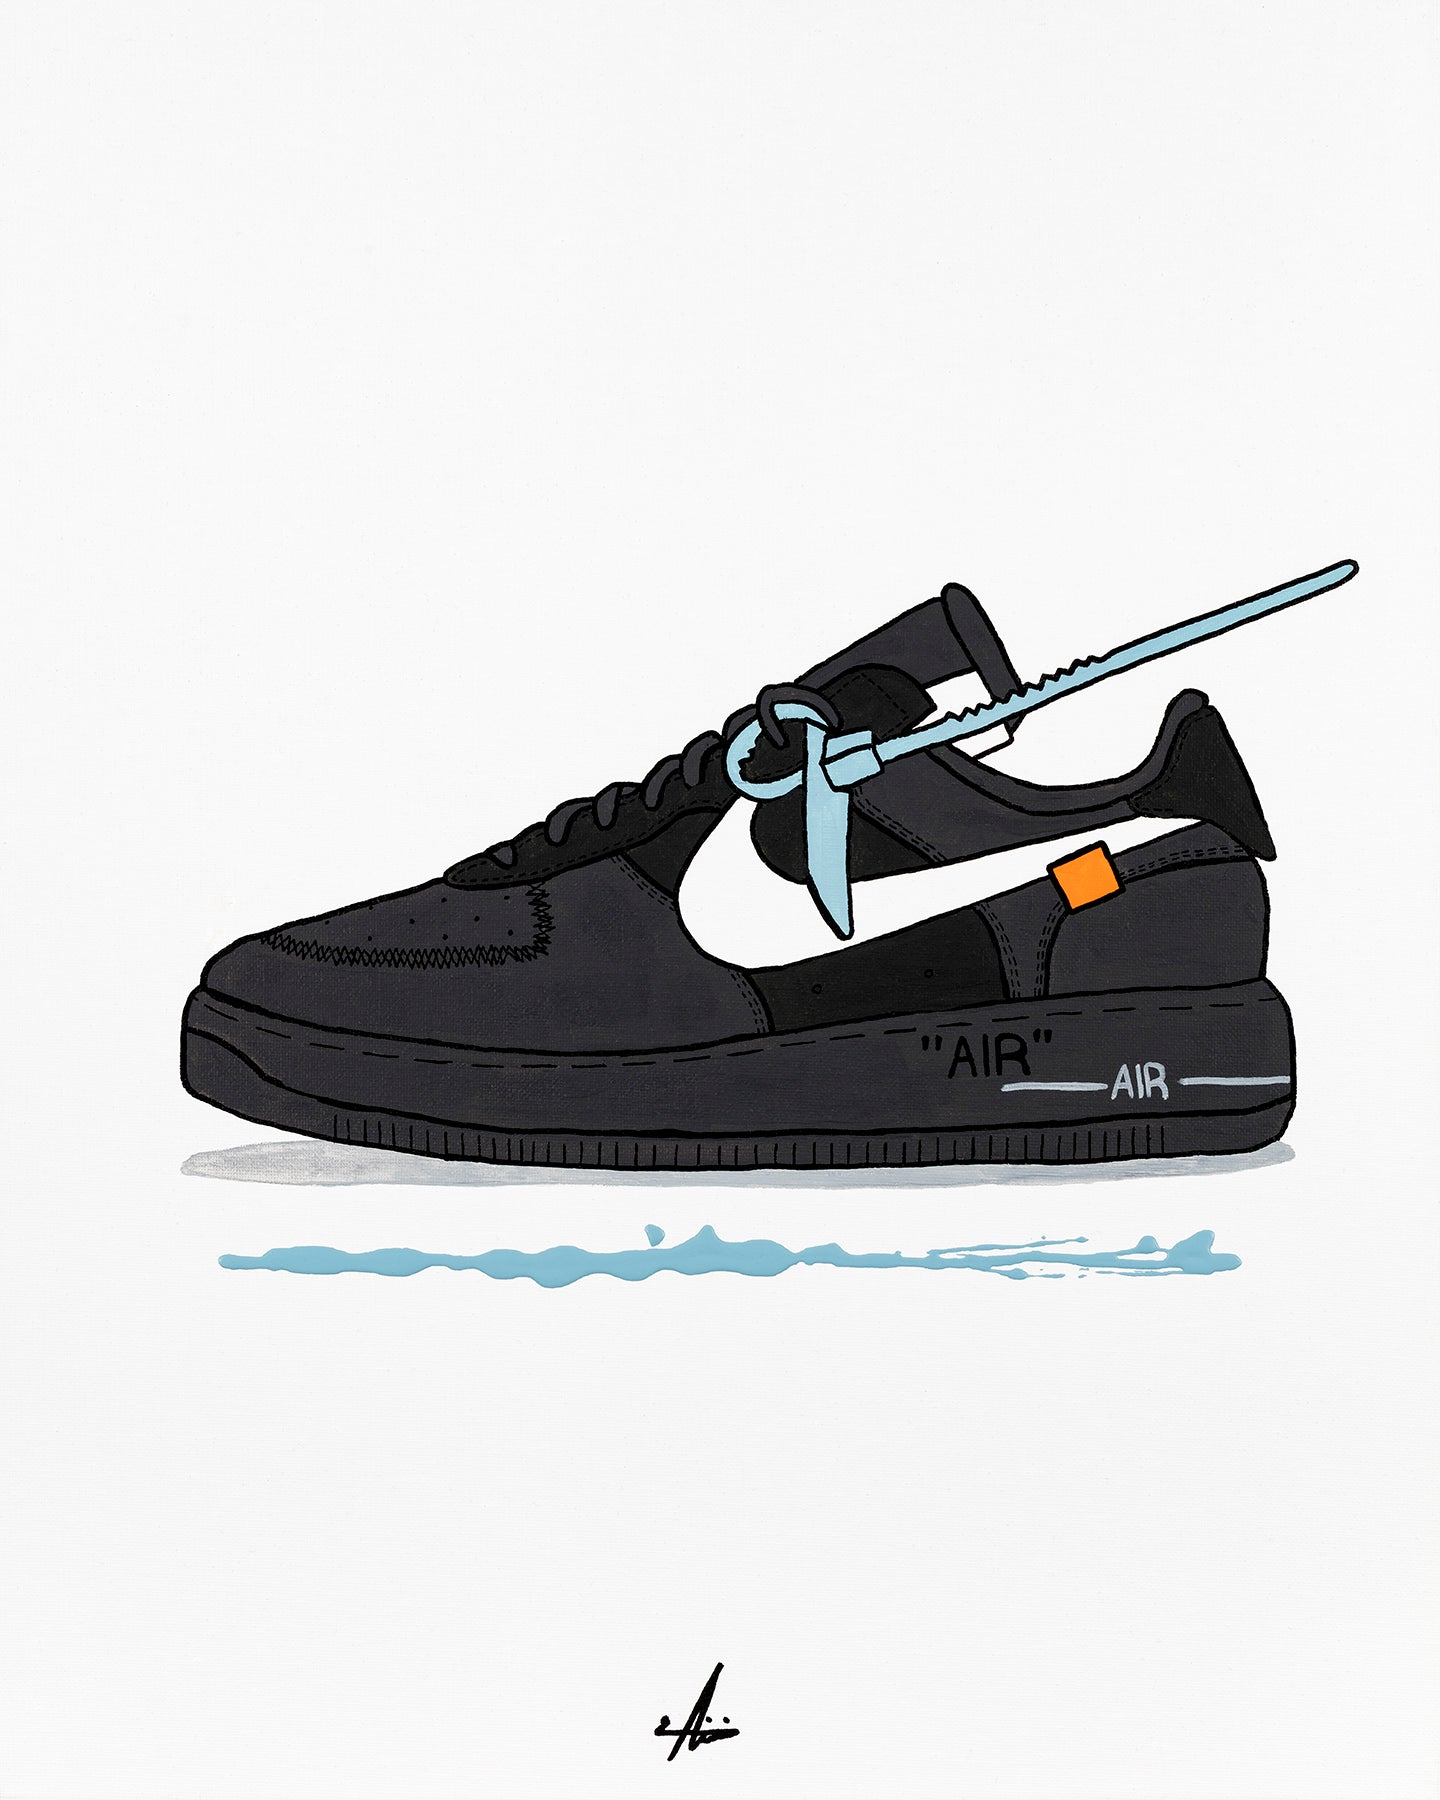 Mahyar - Virgil Abloh x Air Force 1 Black